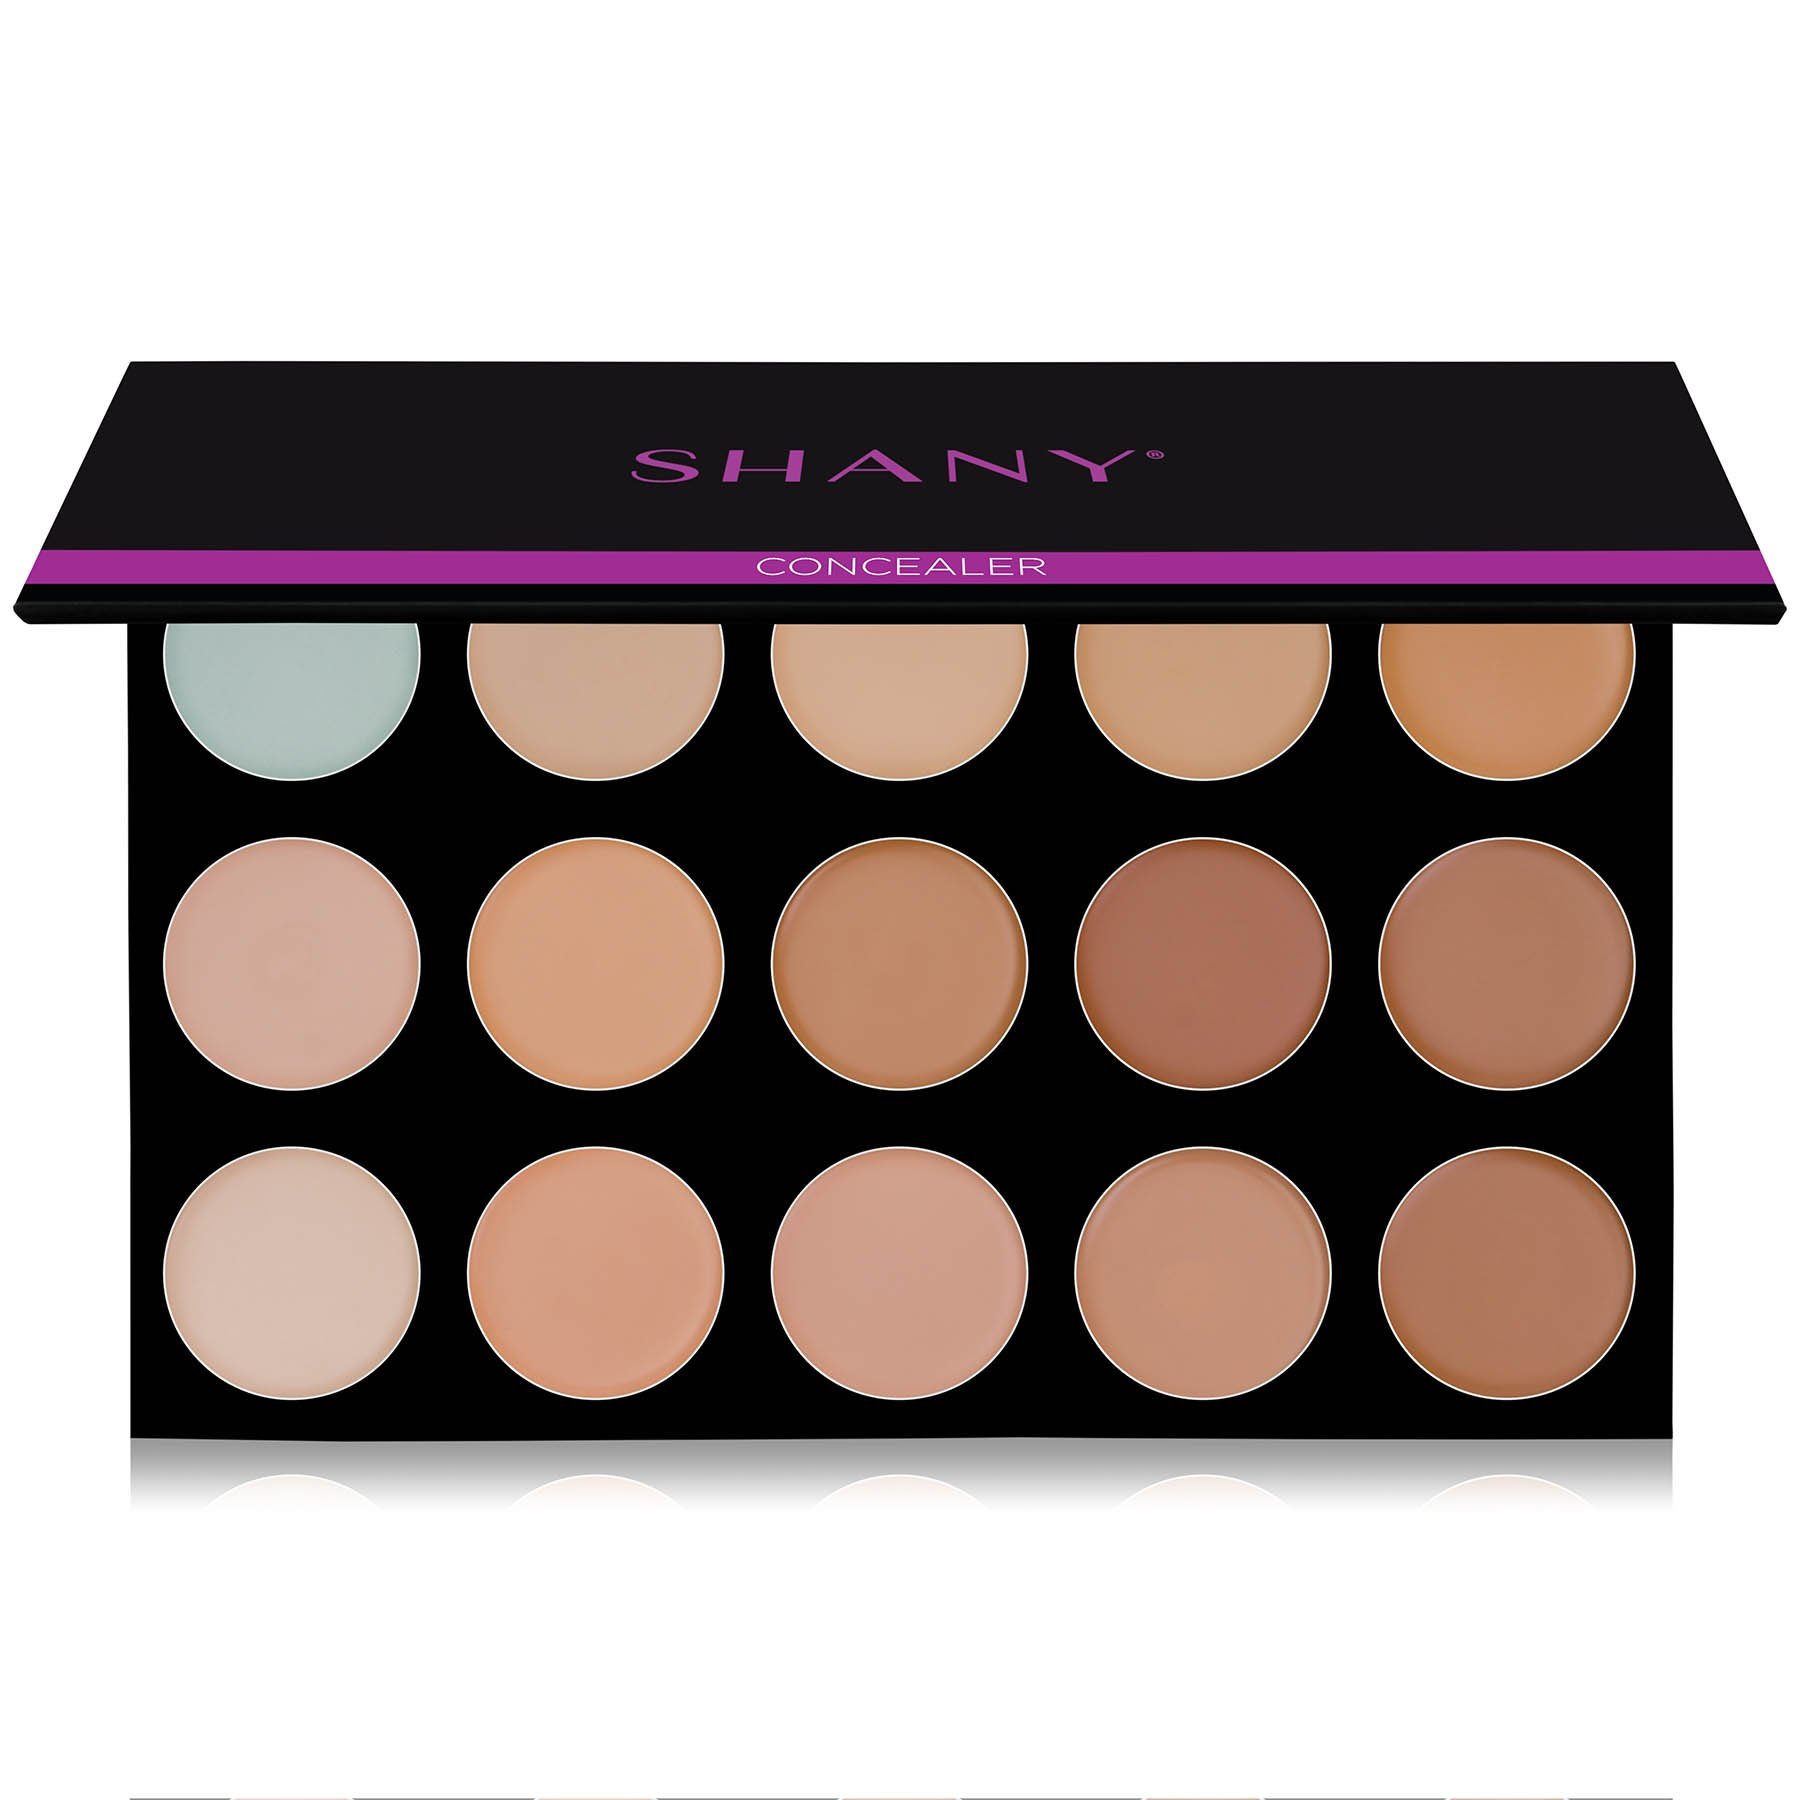 SHANY Masterpiece 15 Color Foundation, Concealer, Camouflage Palette/Refill -TONED